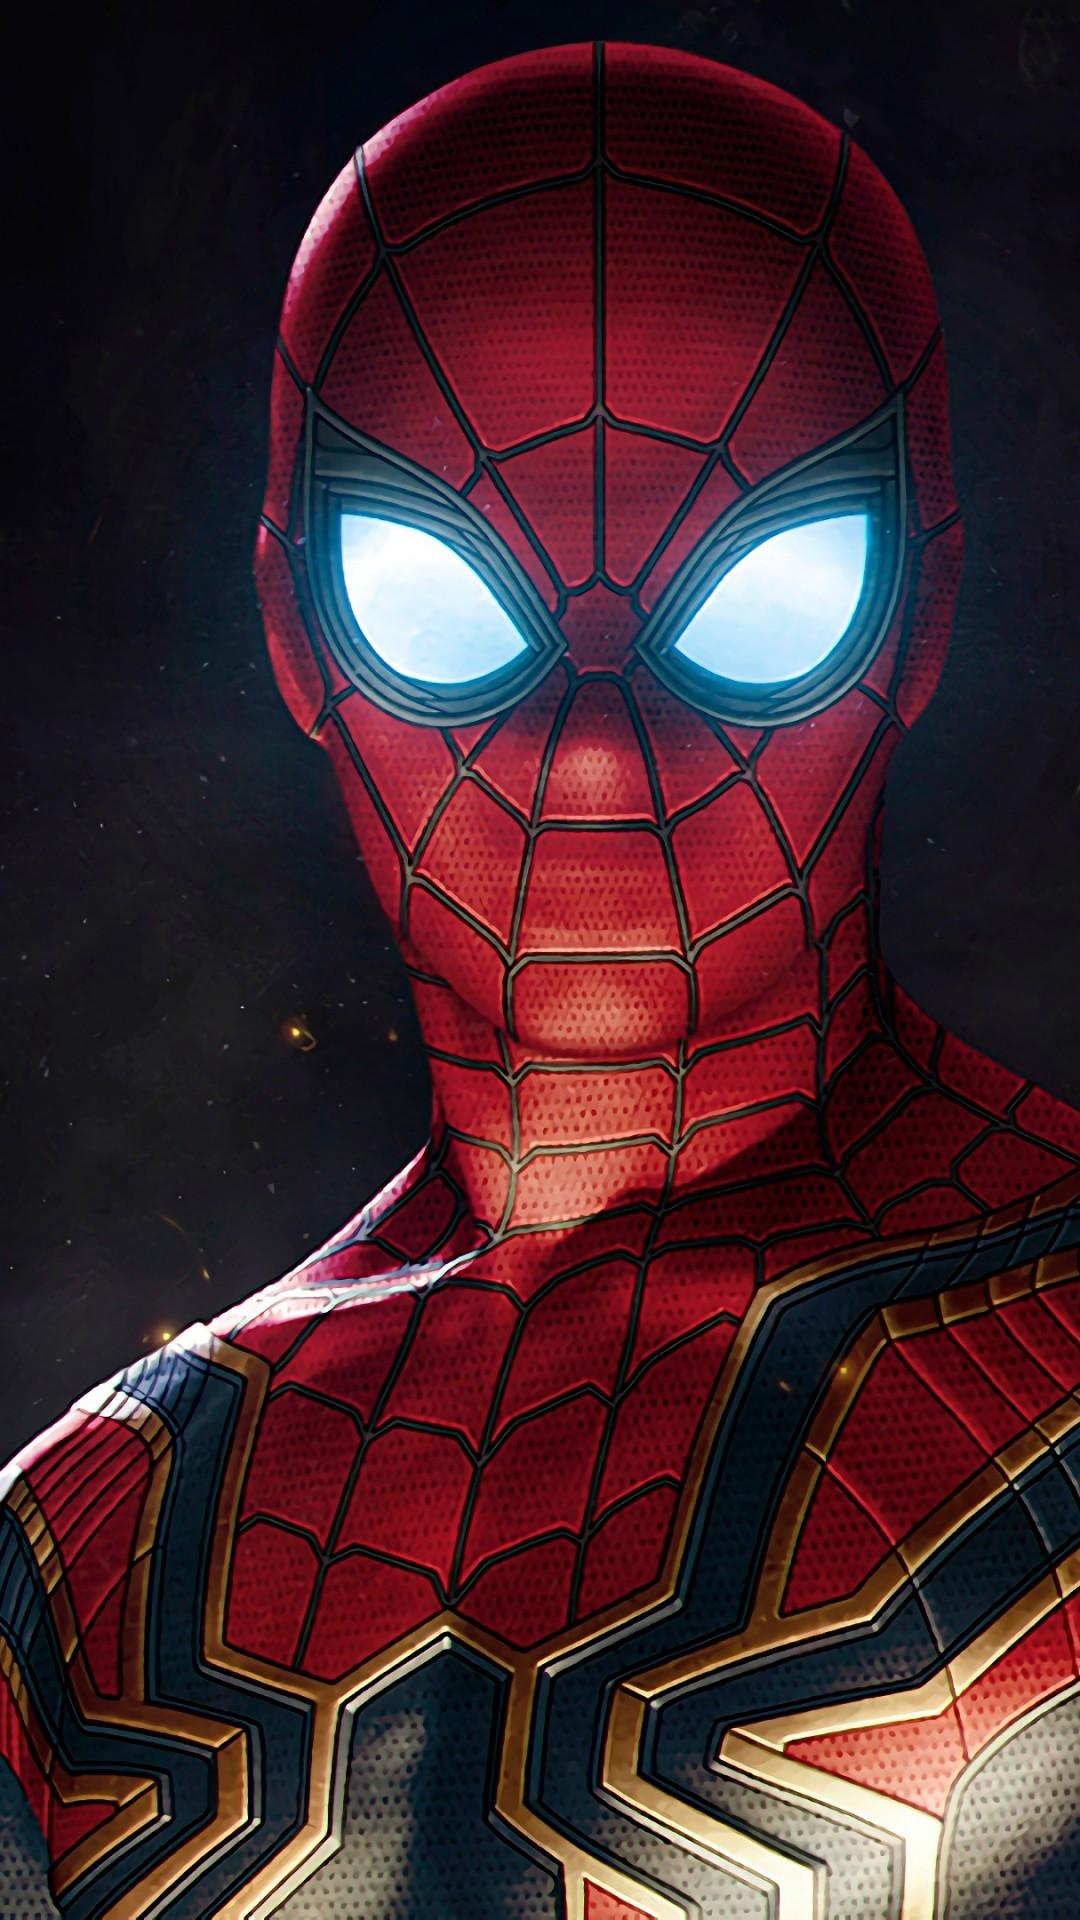 Spider Man Android 4k Wallpapers - Wallpaper Cave